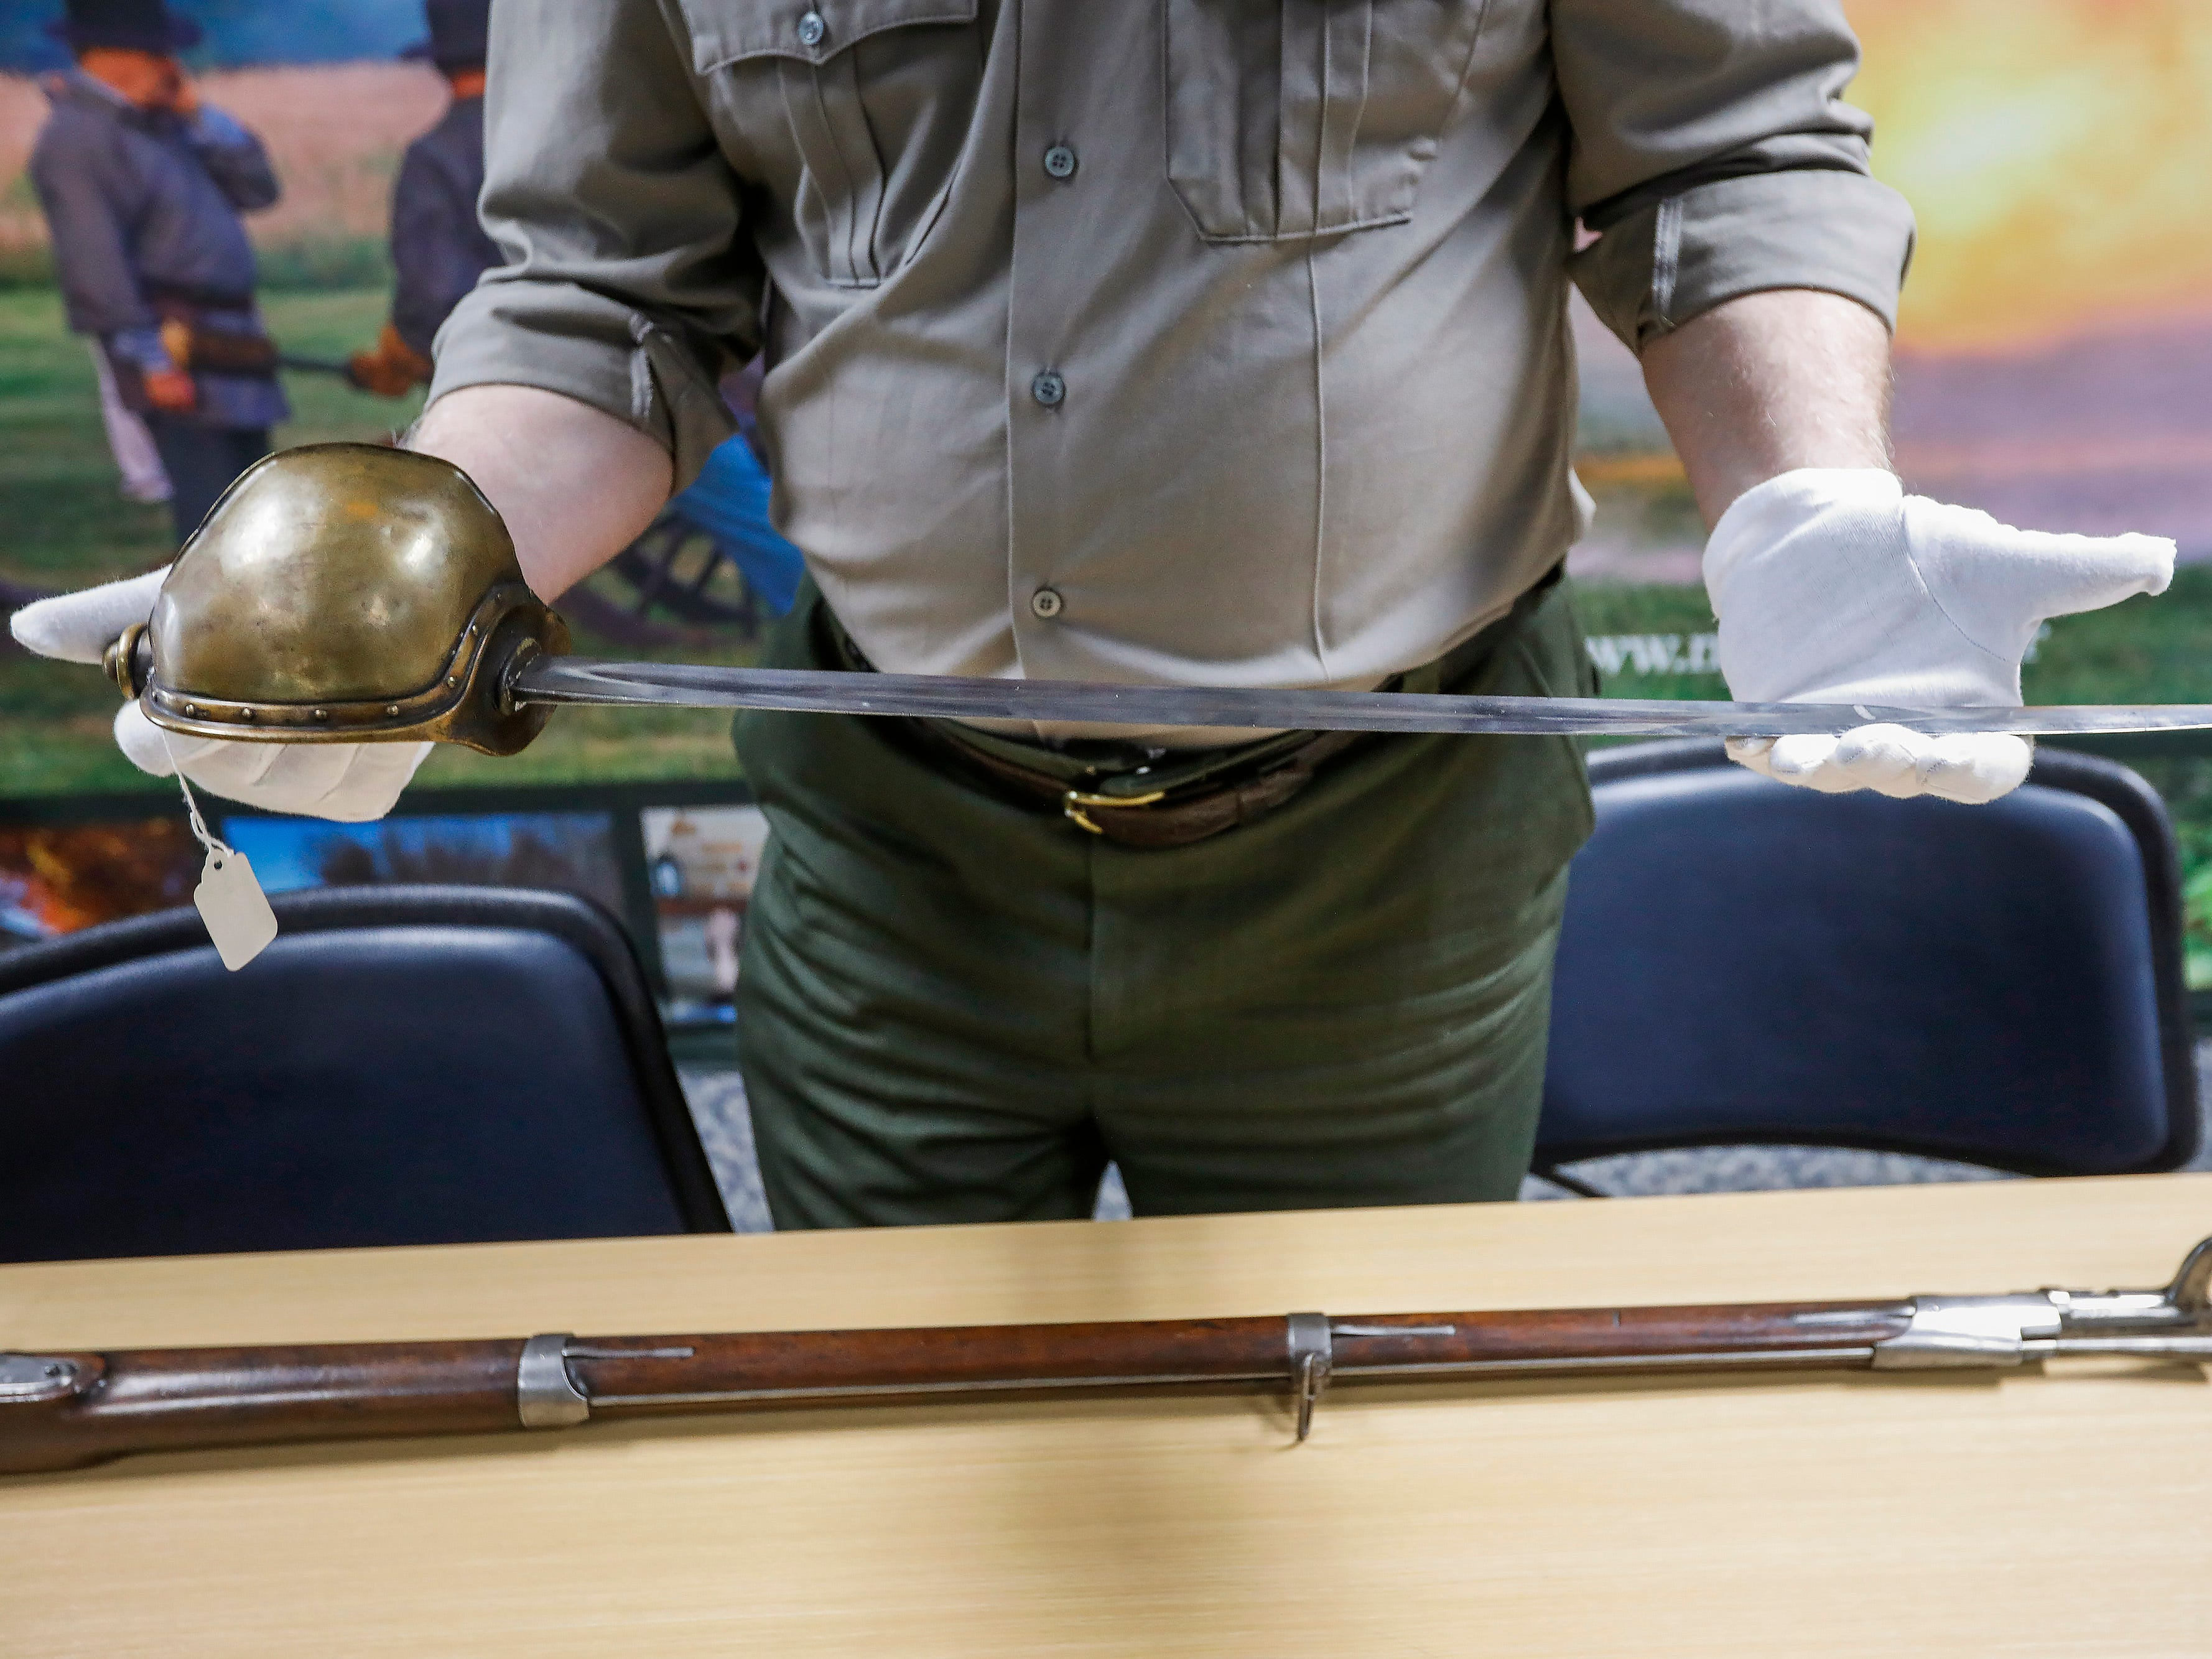 Jeff Patrick, the curator at Wilson's Creek National Battlefield, holds a Civil War navy cutlass. The cutlass is one of the artifacts that will be on display after renovations to the visitors center are completed.